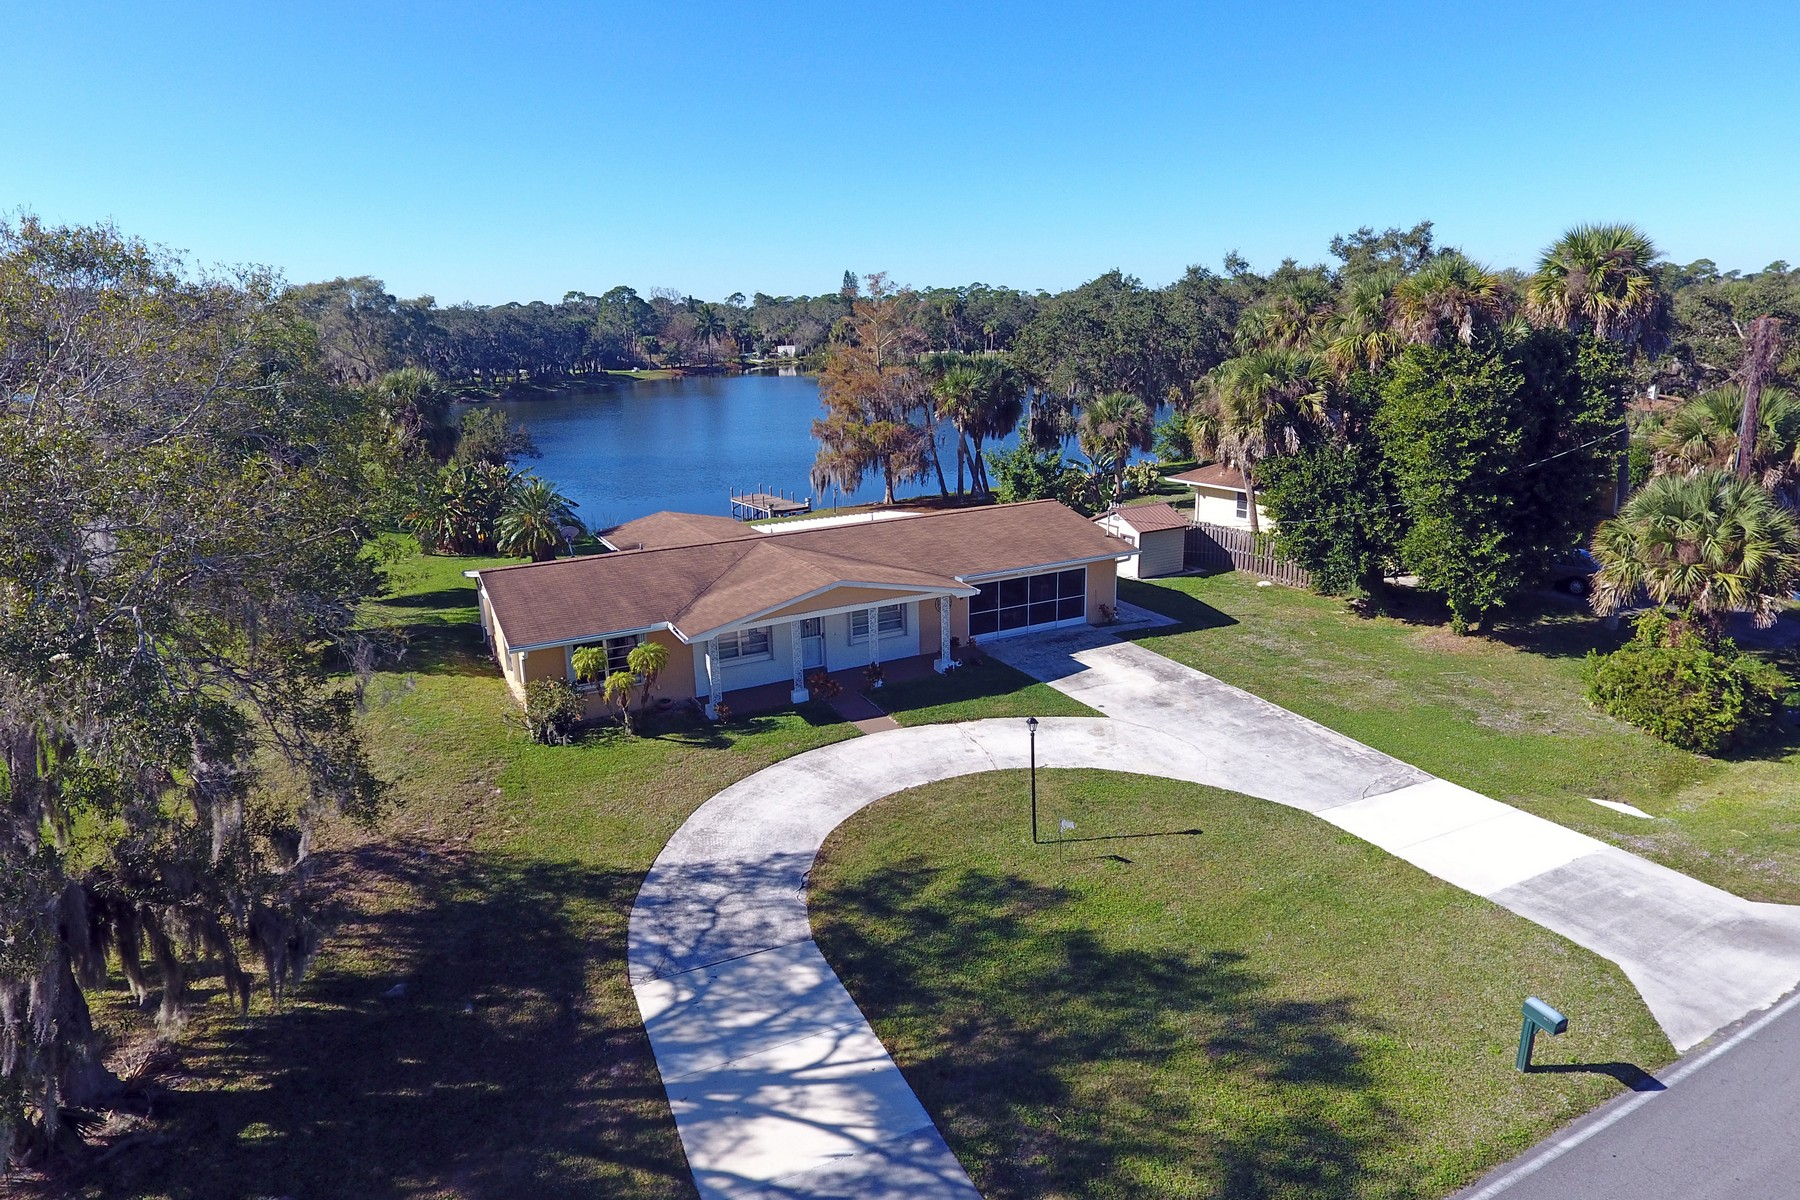 Single Family Home for Sale at Move in Ready Lakefront Dream 6607 Fort Pierce Blvd Fort Pierce, Florida 34951 United States